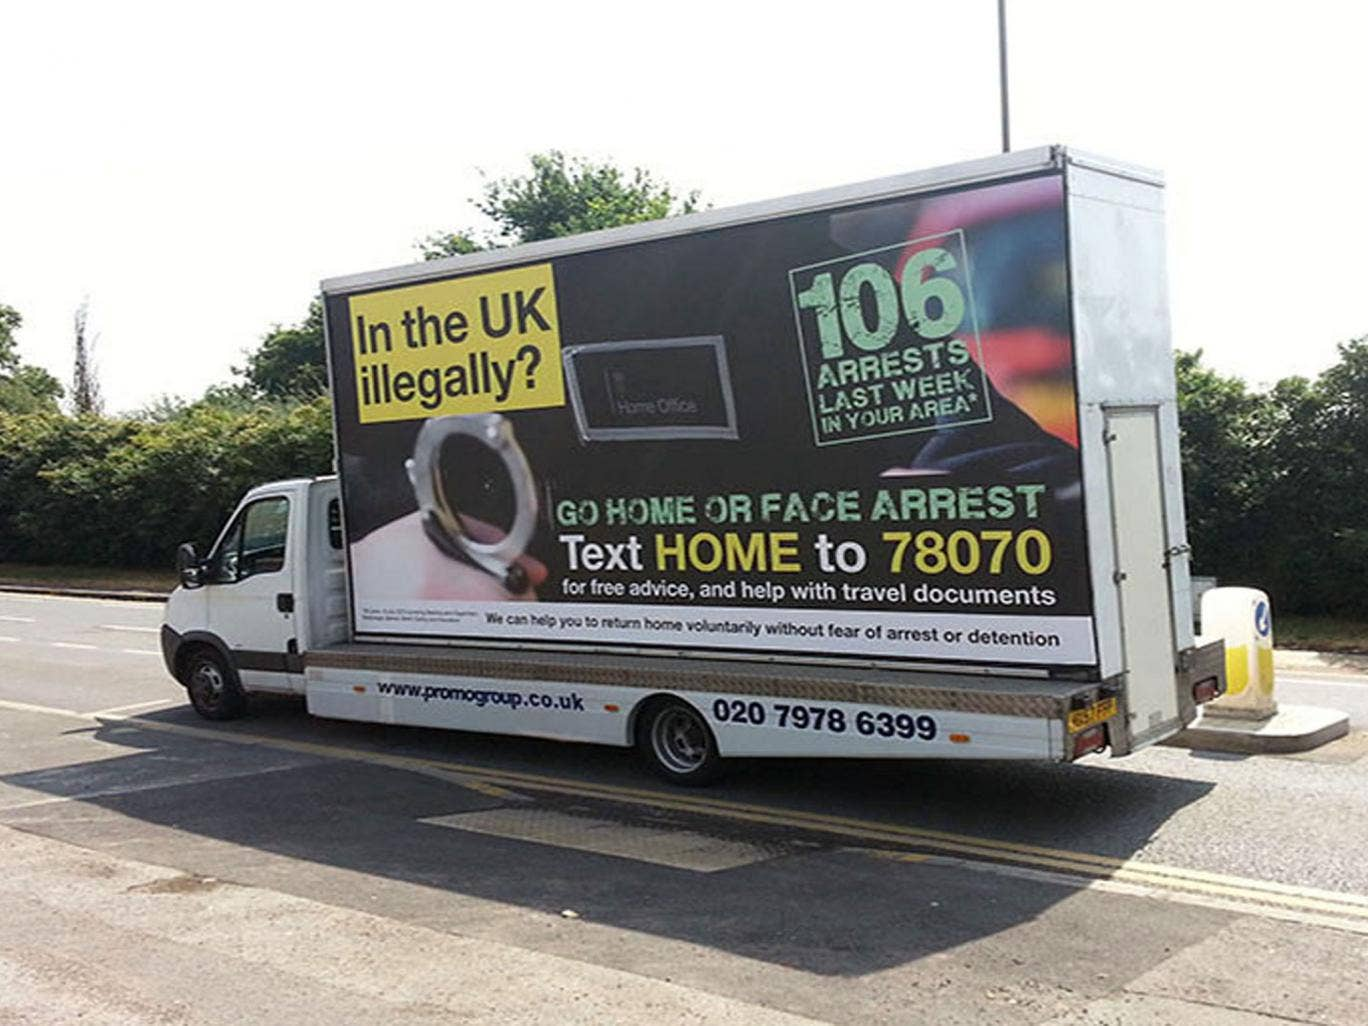 A controversial advertising campaign urging illegal immigrants to go home is causing rows among the coalition